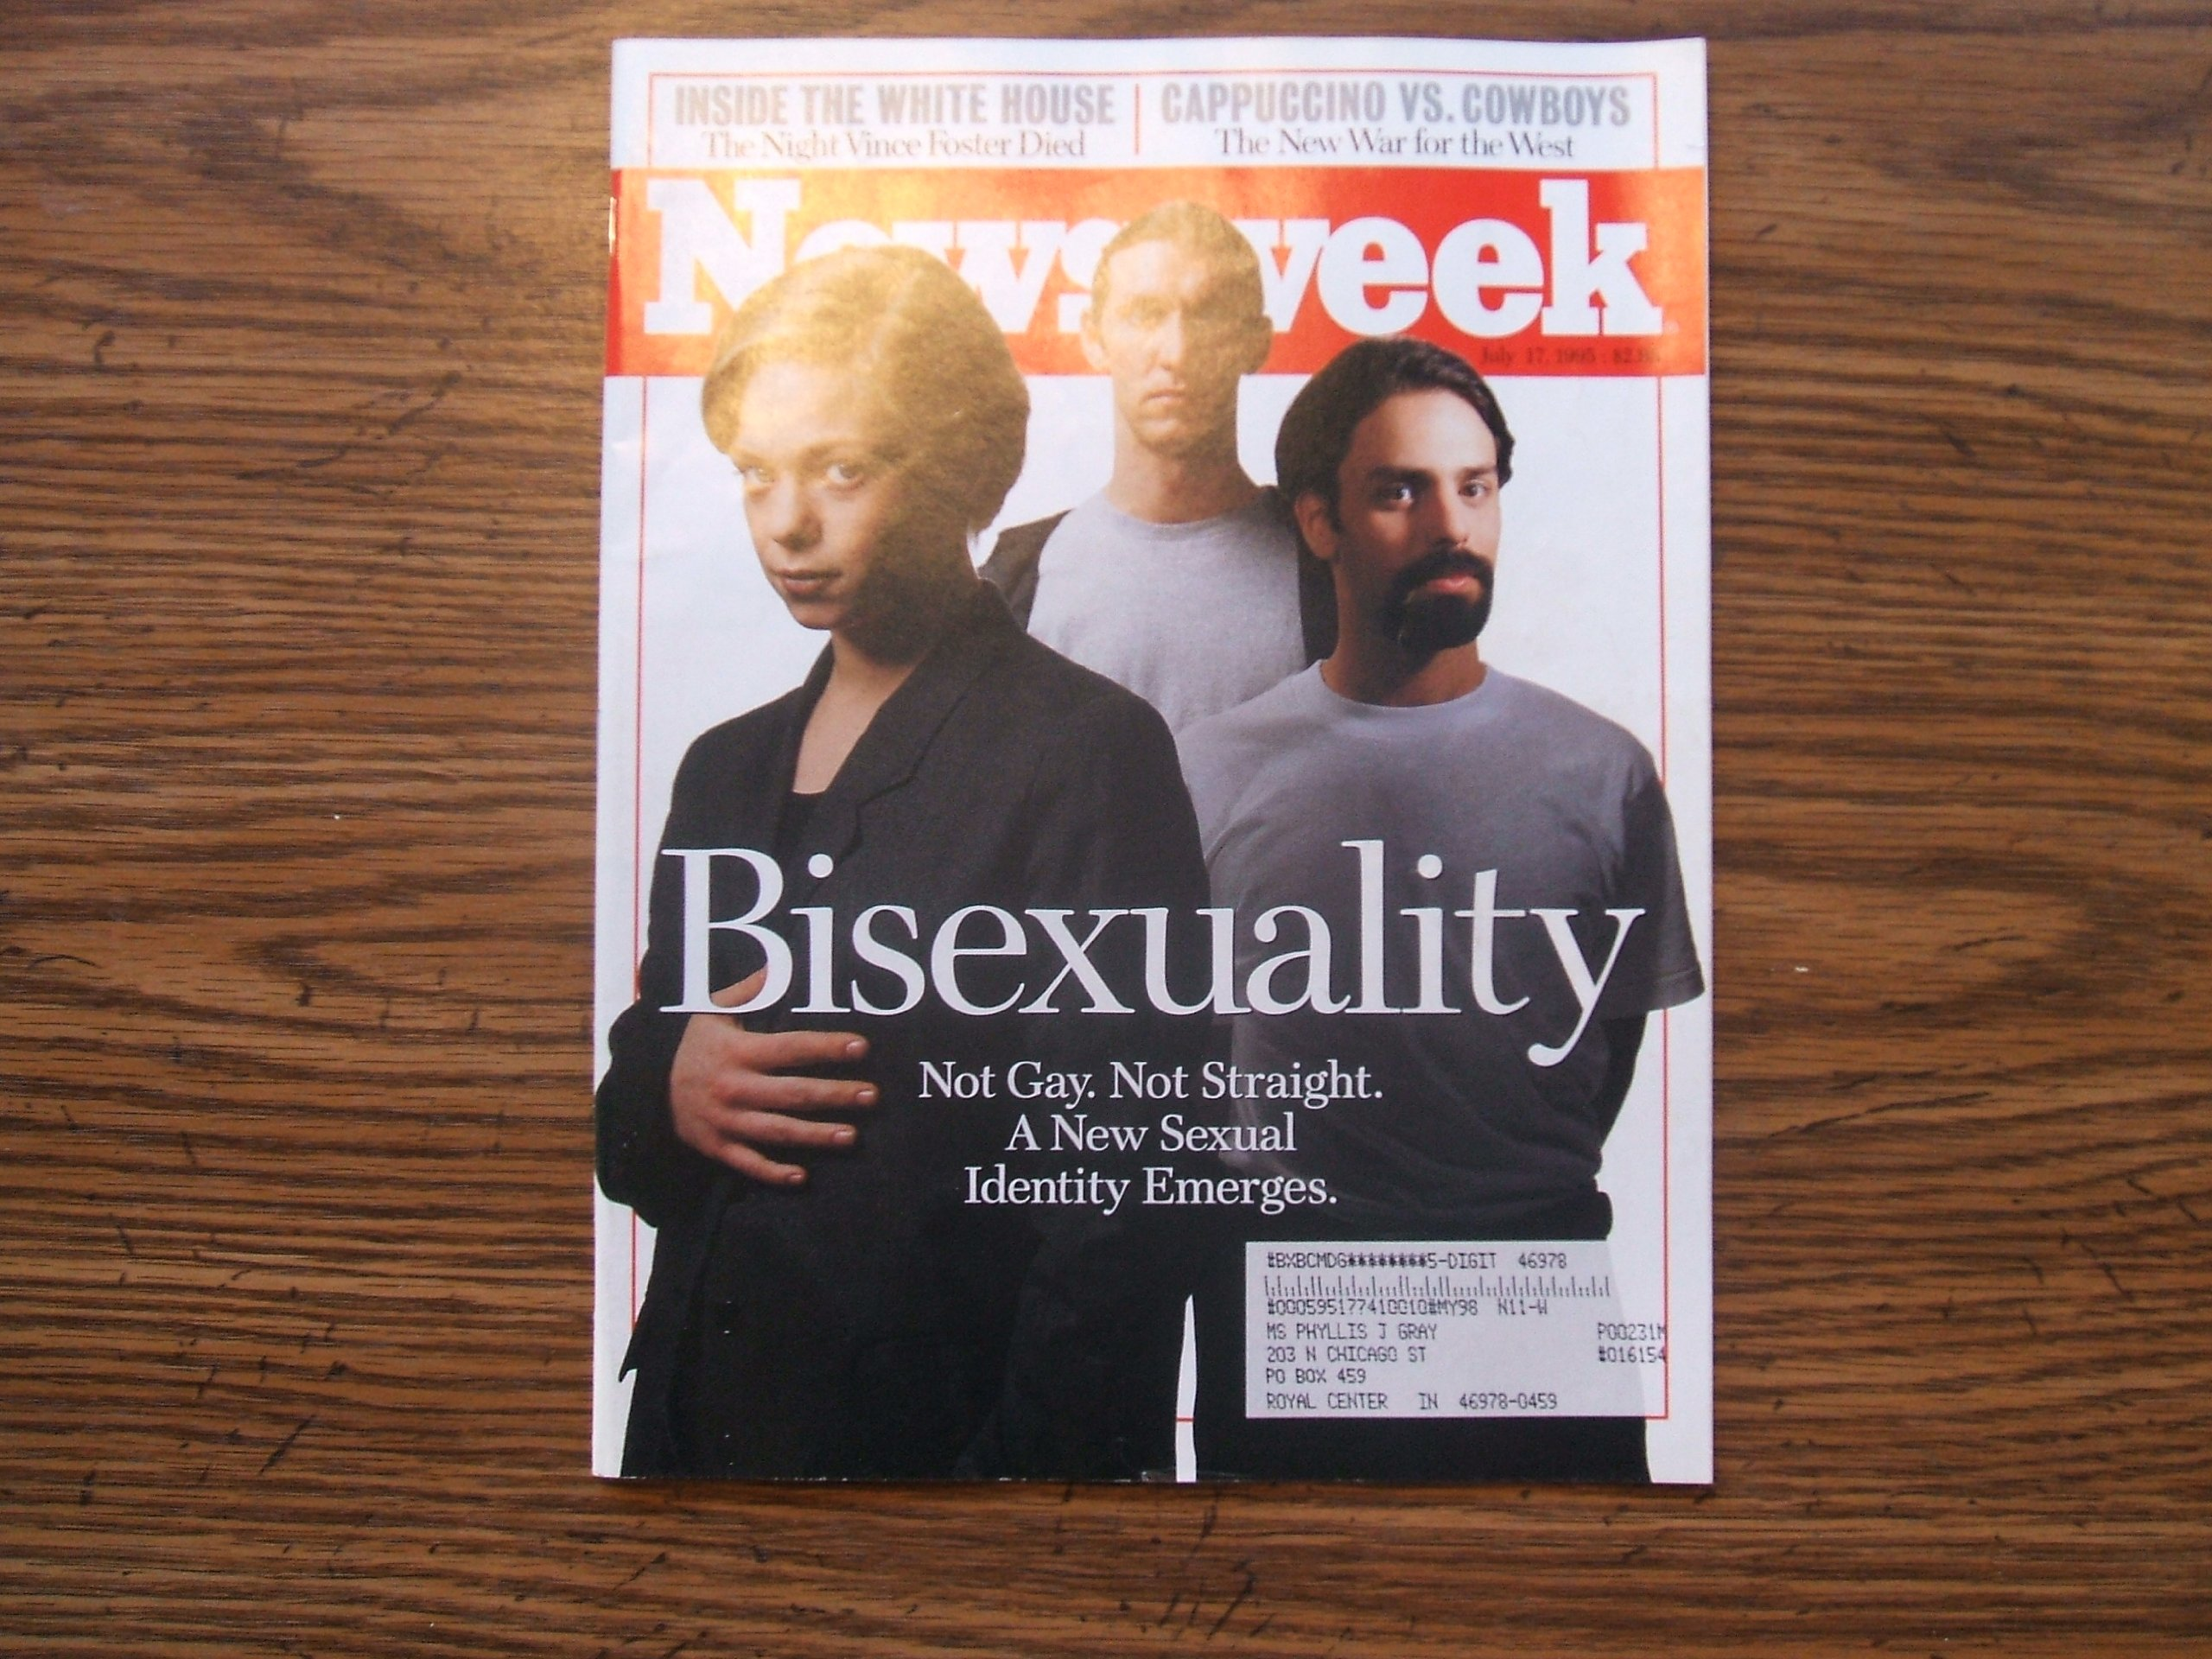 Bisexuality Newsweek July 17, 1995 (NOT GAY. NOT STRAIGHT. A NEW SEXUAL IDENTITY EMERGES. INSIDE THE WHITE HOUSE THE NIGHT VINCE FOSTER DIED, VOLUME CXXVI, NO. 3)